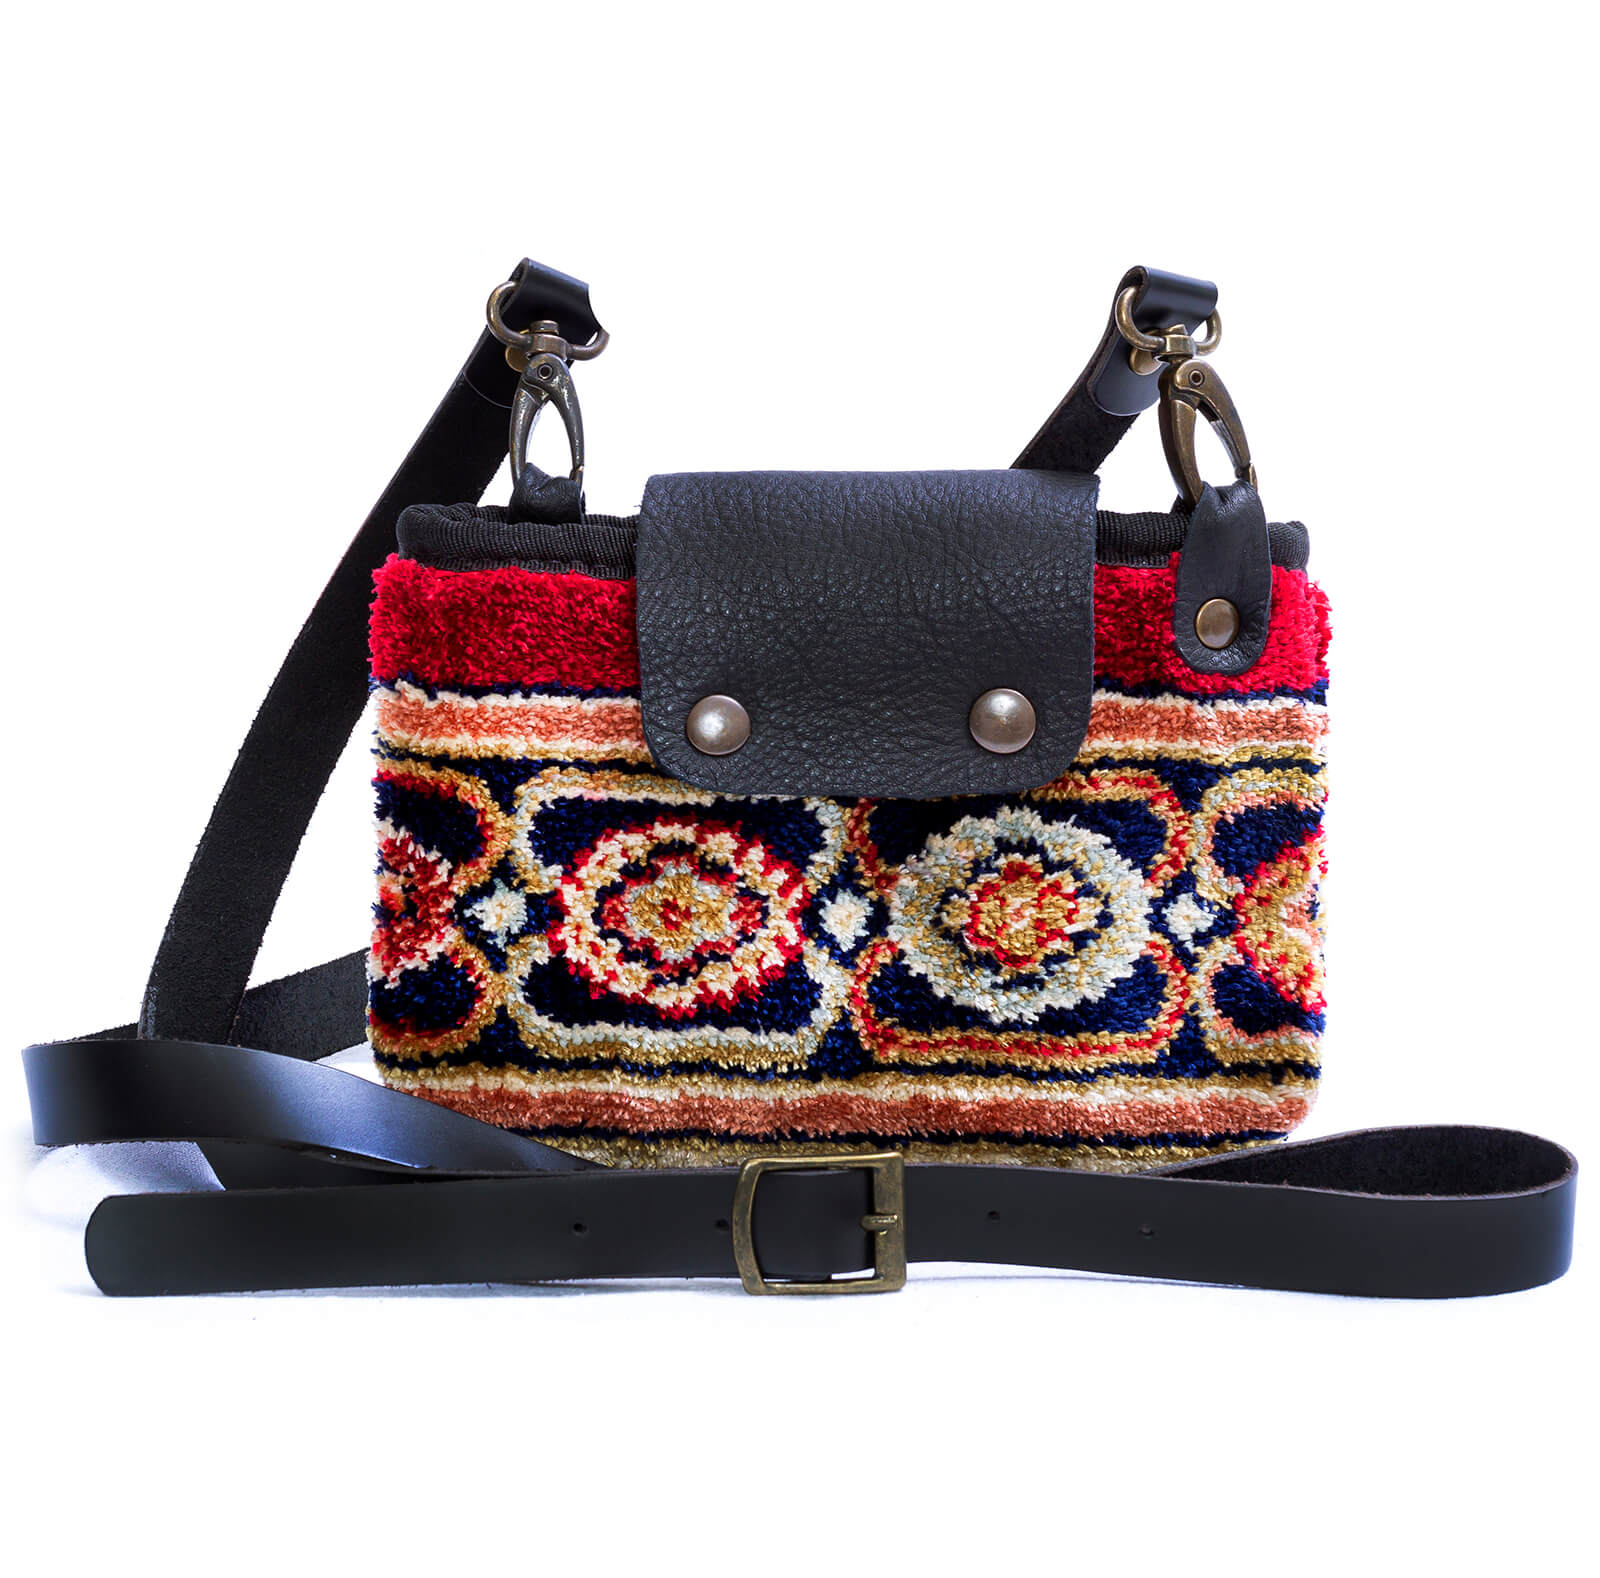 Image of MYSTERY Polaris Red Victorian Carpet Bag.